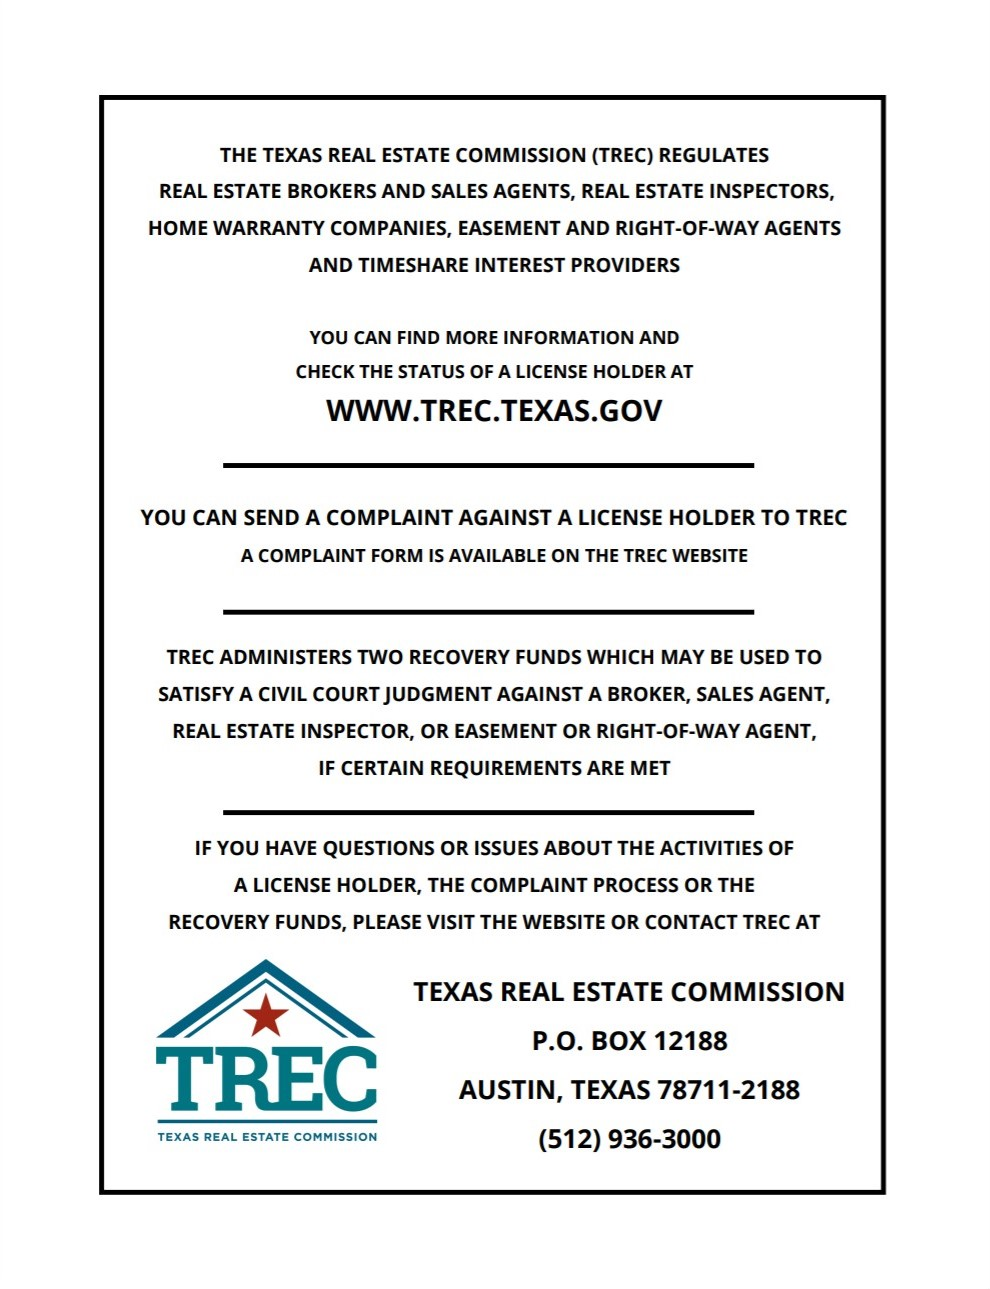 Texas Real Estate Commission Consumer Protection Notice